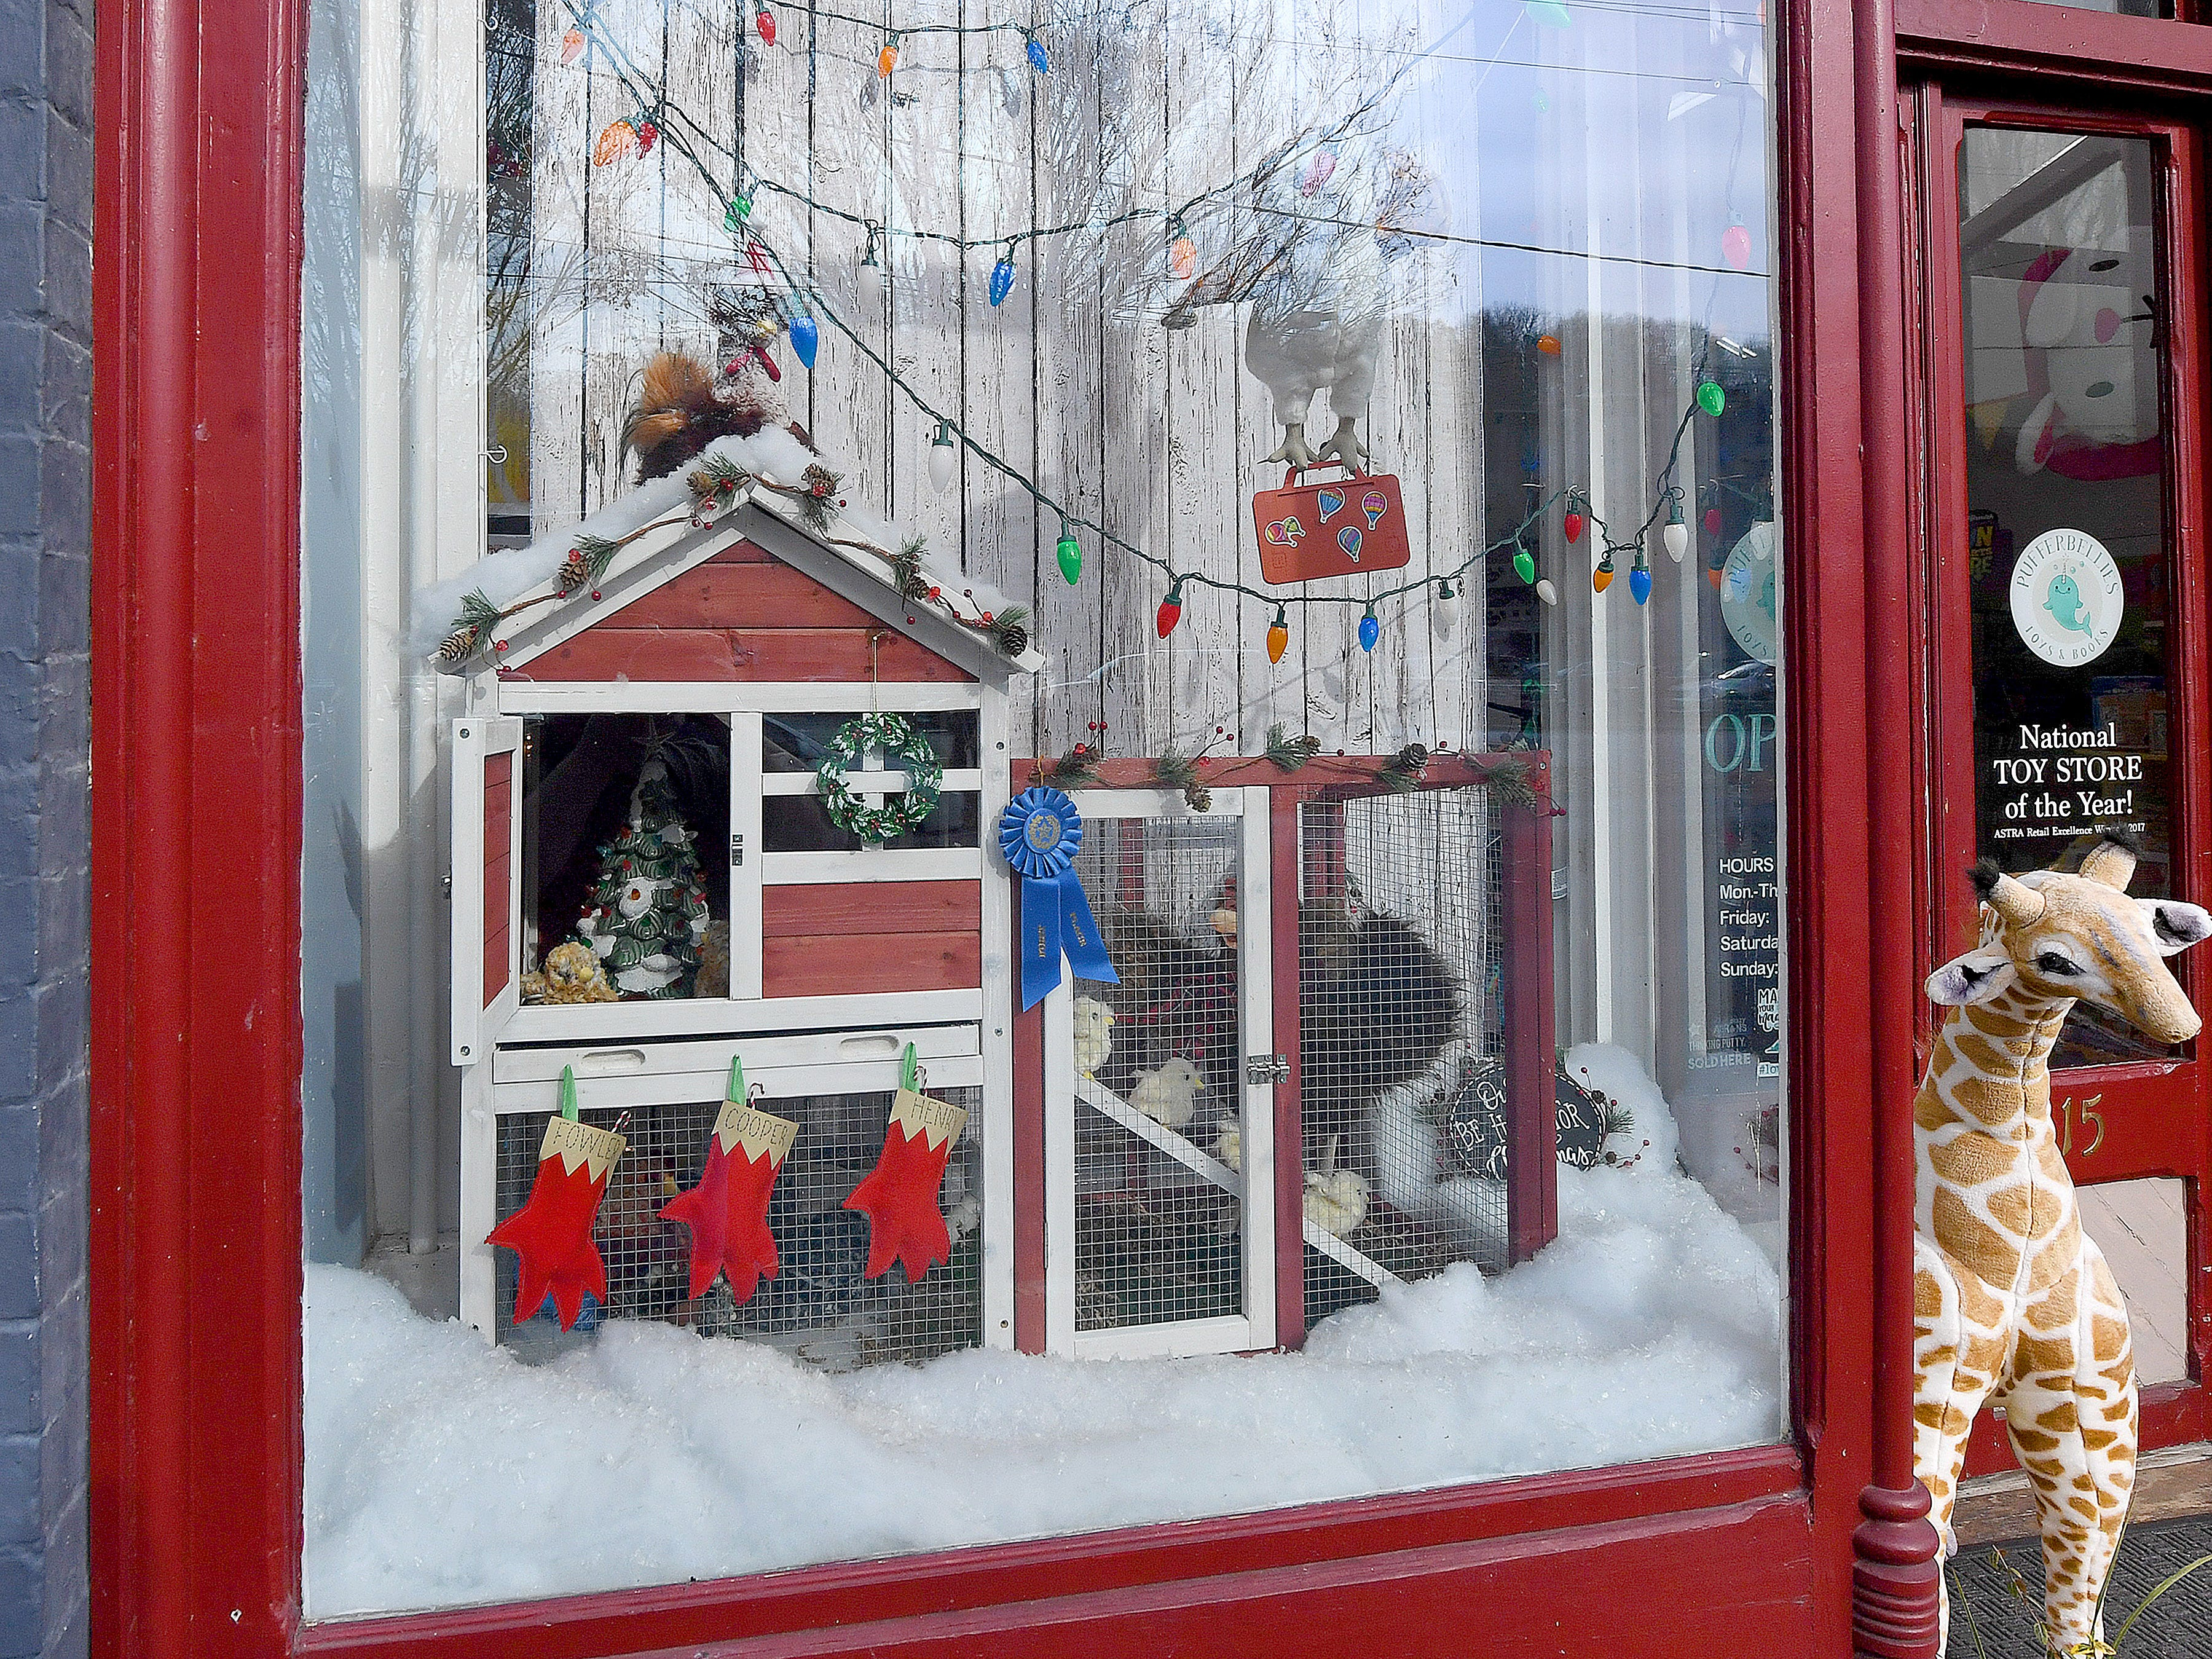 Pufferbellies' holiday window display placed first in Staunton Downtown Development Association's holiday storefront window display judging contest.